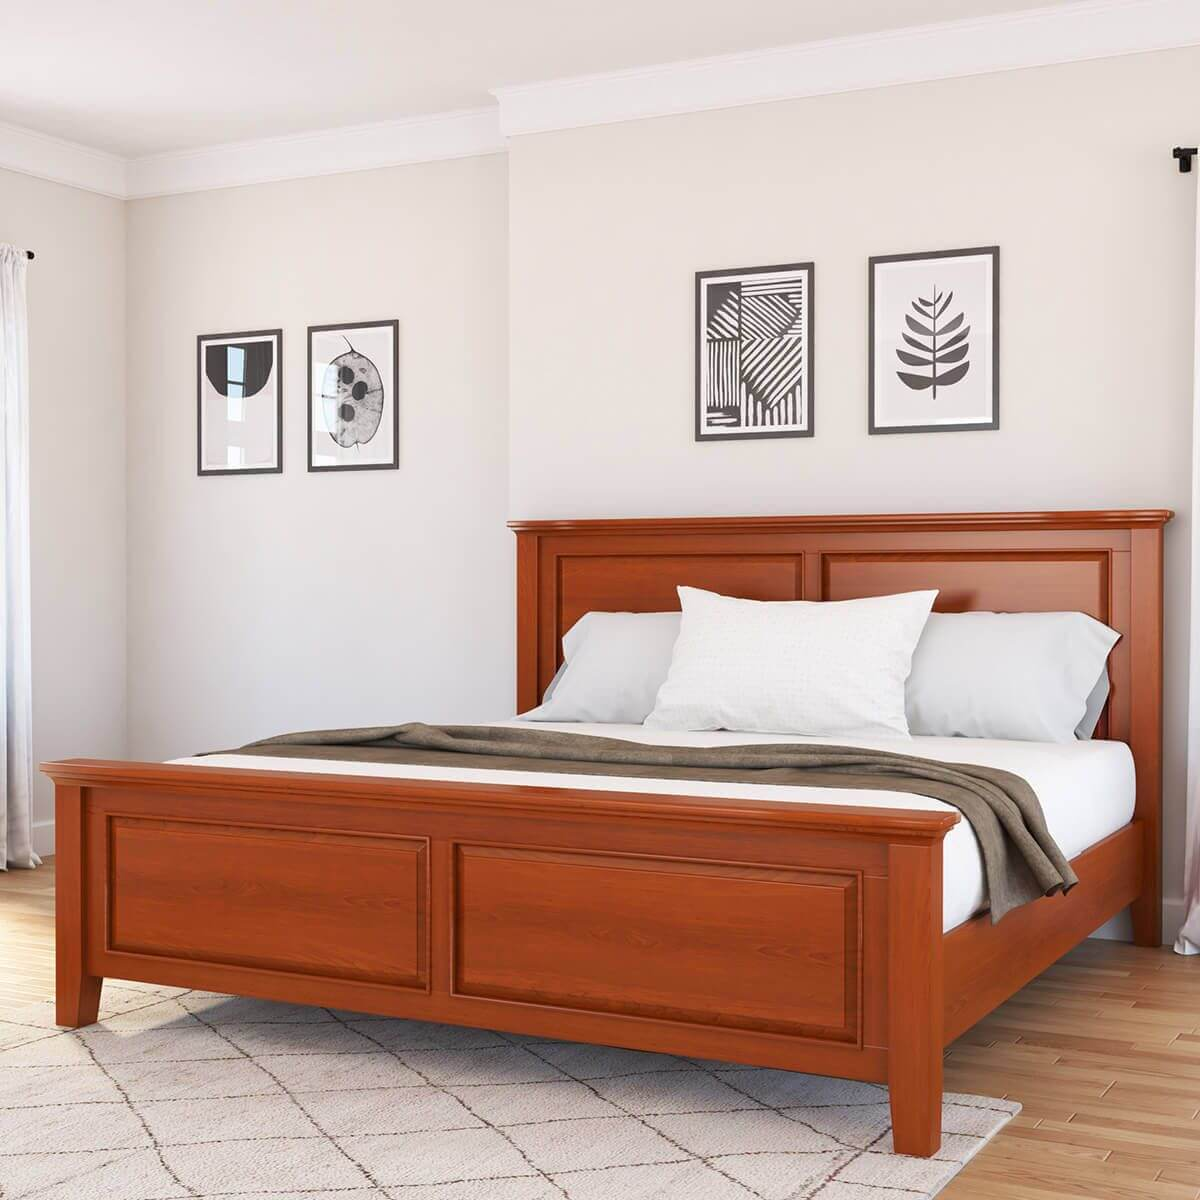 MAHOGANY WOOD BED FRAME IDEAS